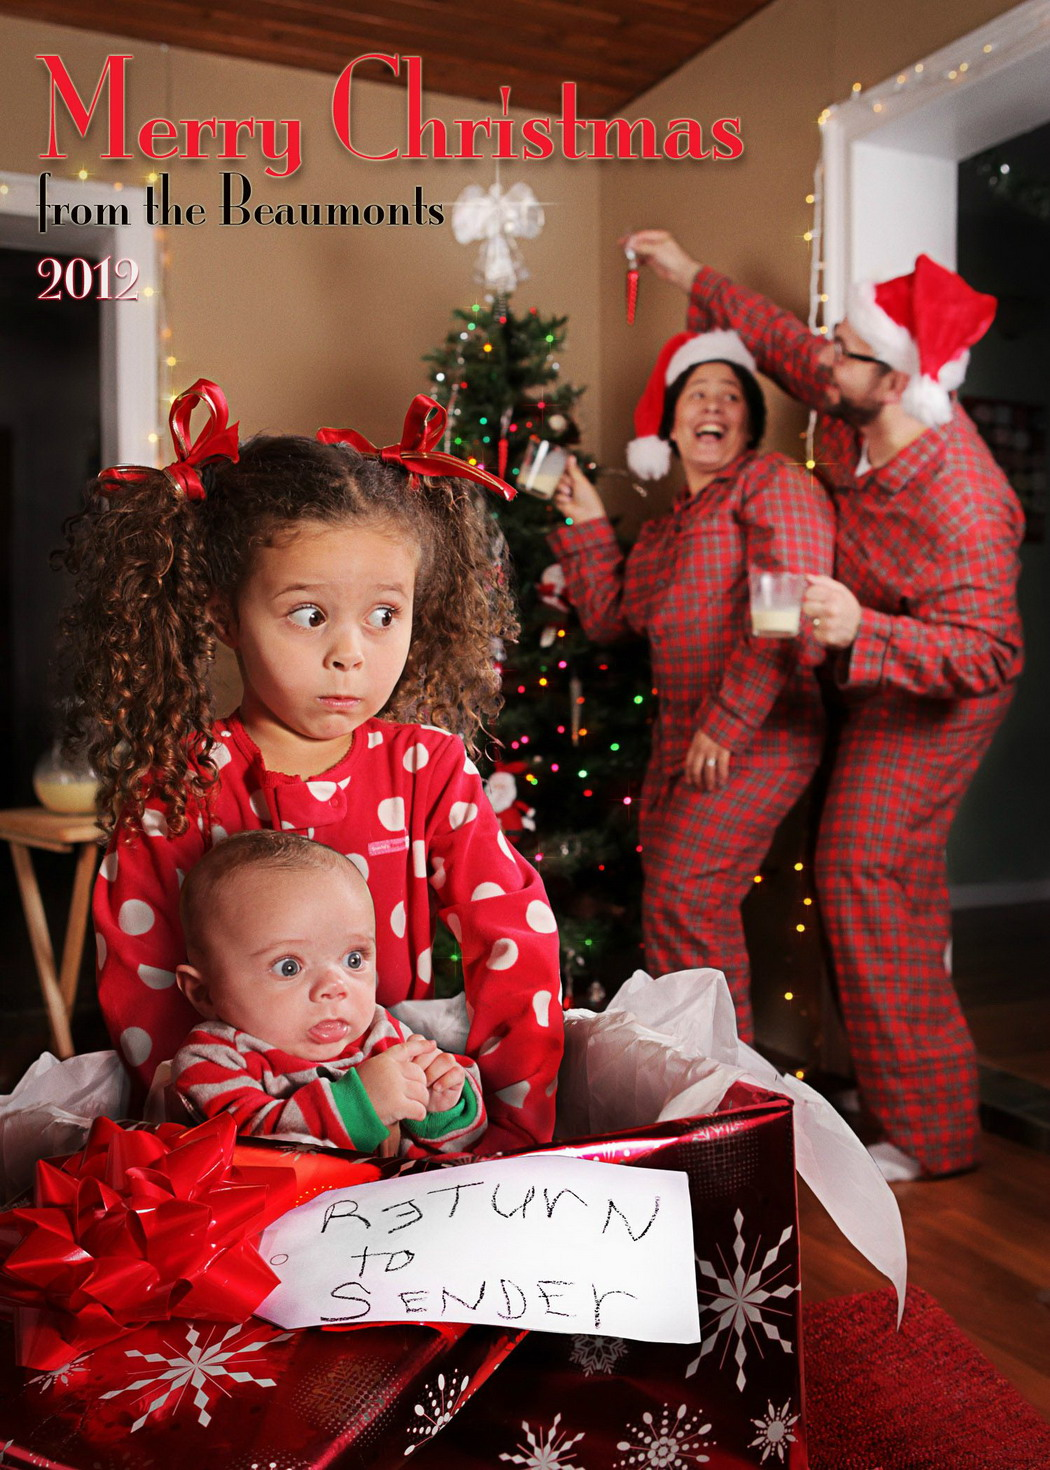 20 christmas cards that are beyond disturbing wtf gallery ebaum 39 s world. Black Bedroom Furniture Sets. Home Design Ideas